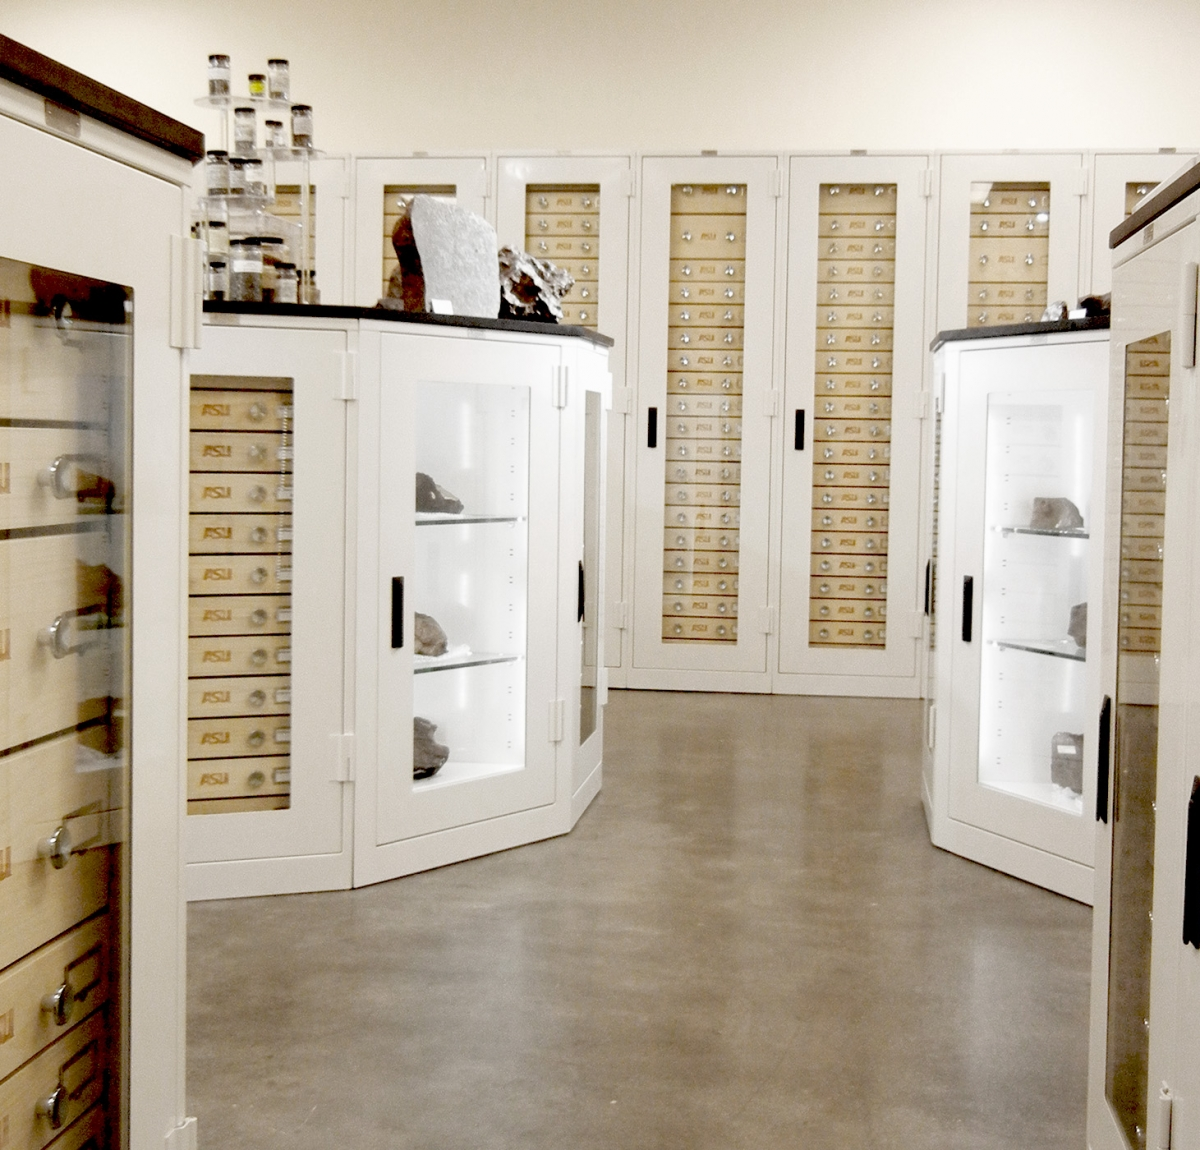 Pharmaceutical Storage Cabinets Museum Storage Cabinets Spacesaver Corporation